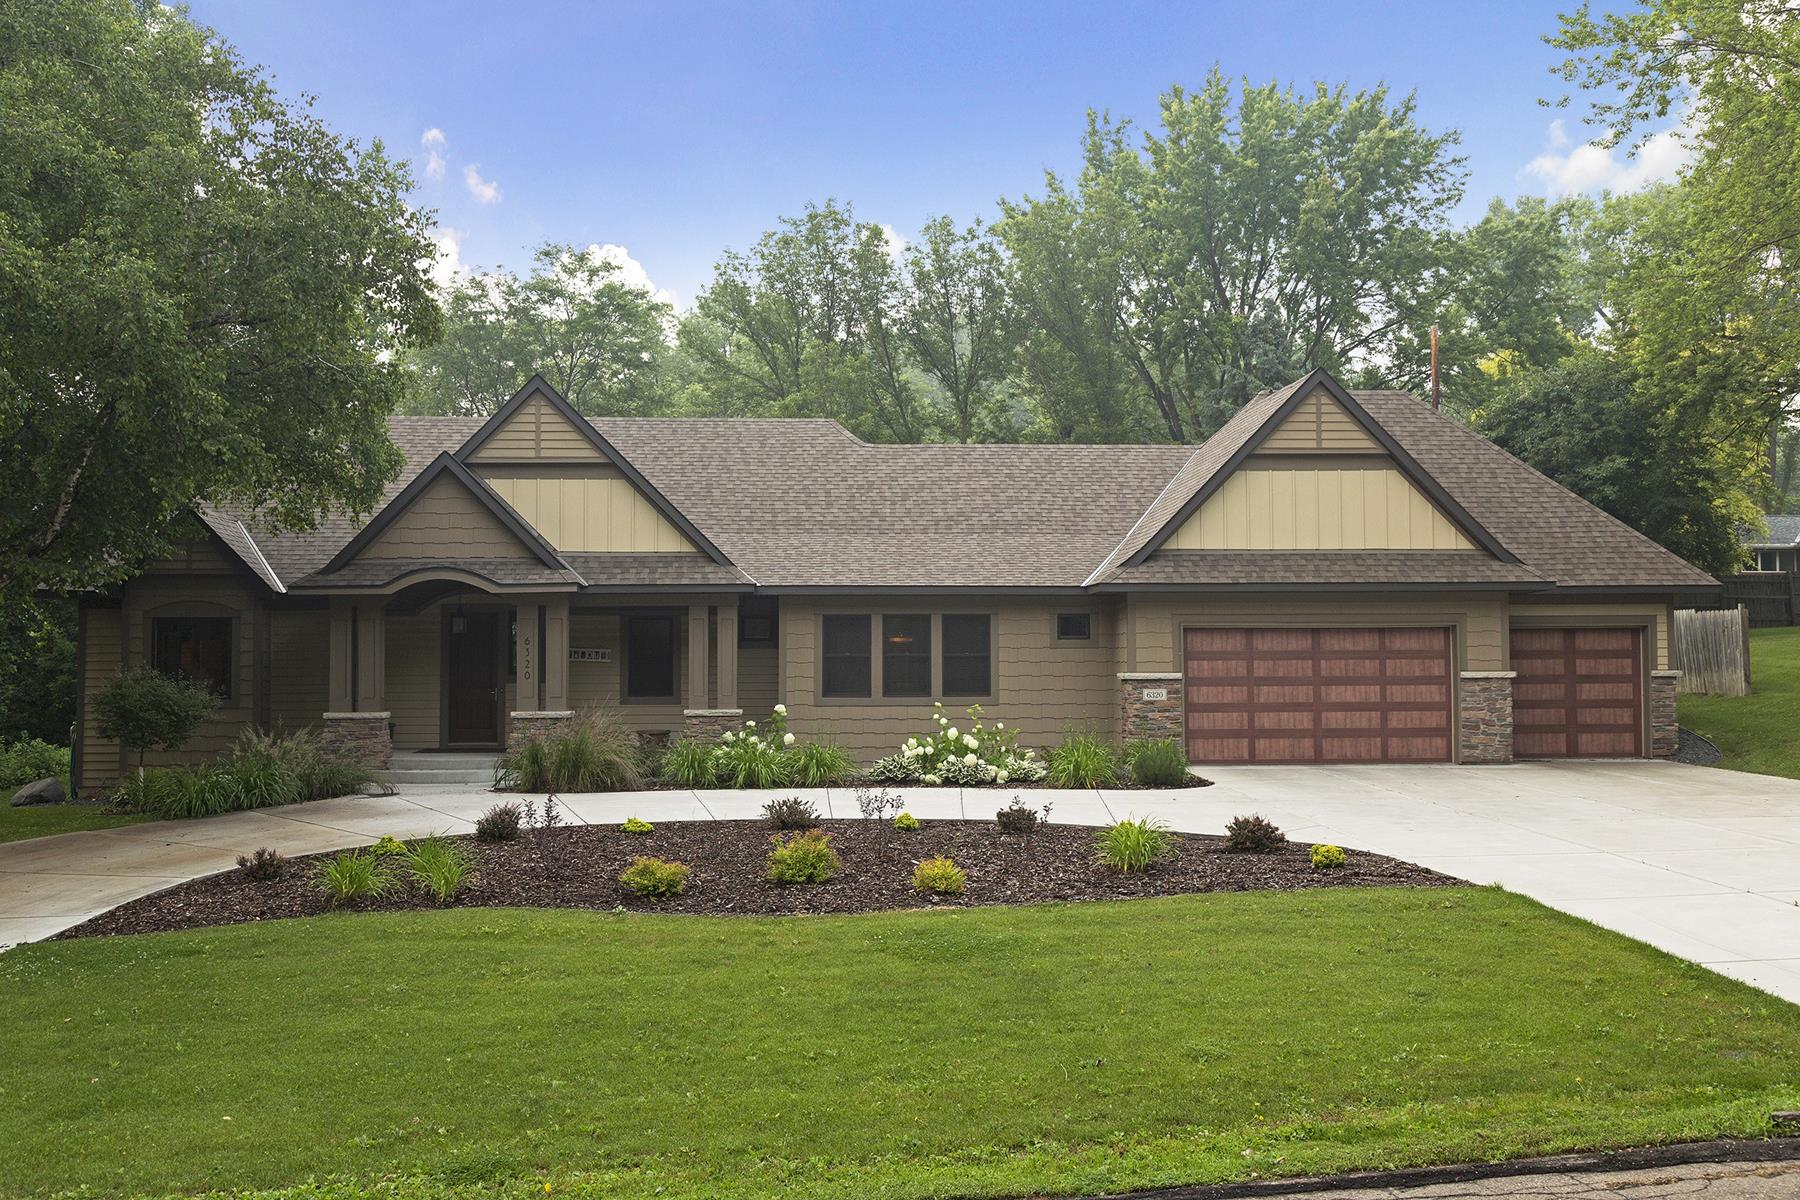 Single Family Home for Sale at 6320 Valley View Road Edina, Minnesota 55436 United States